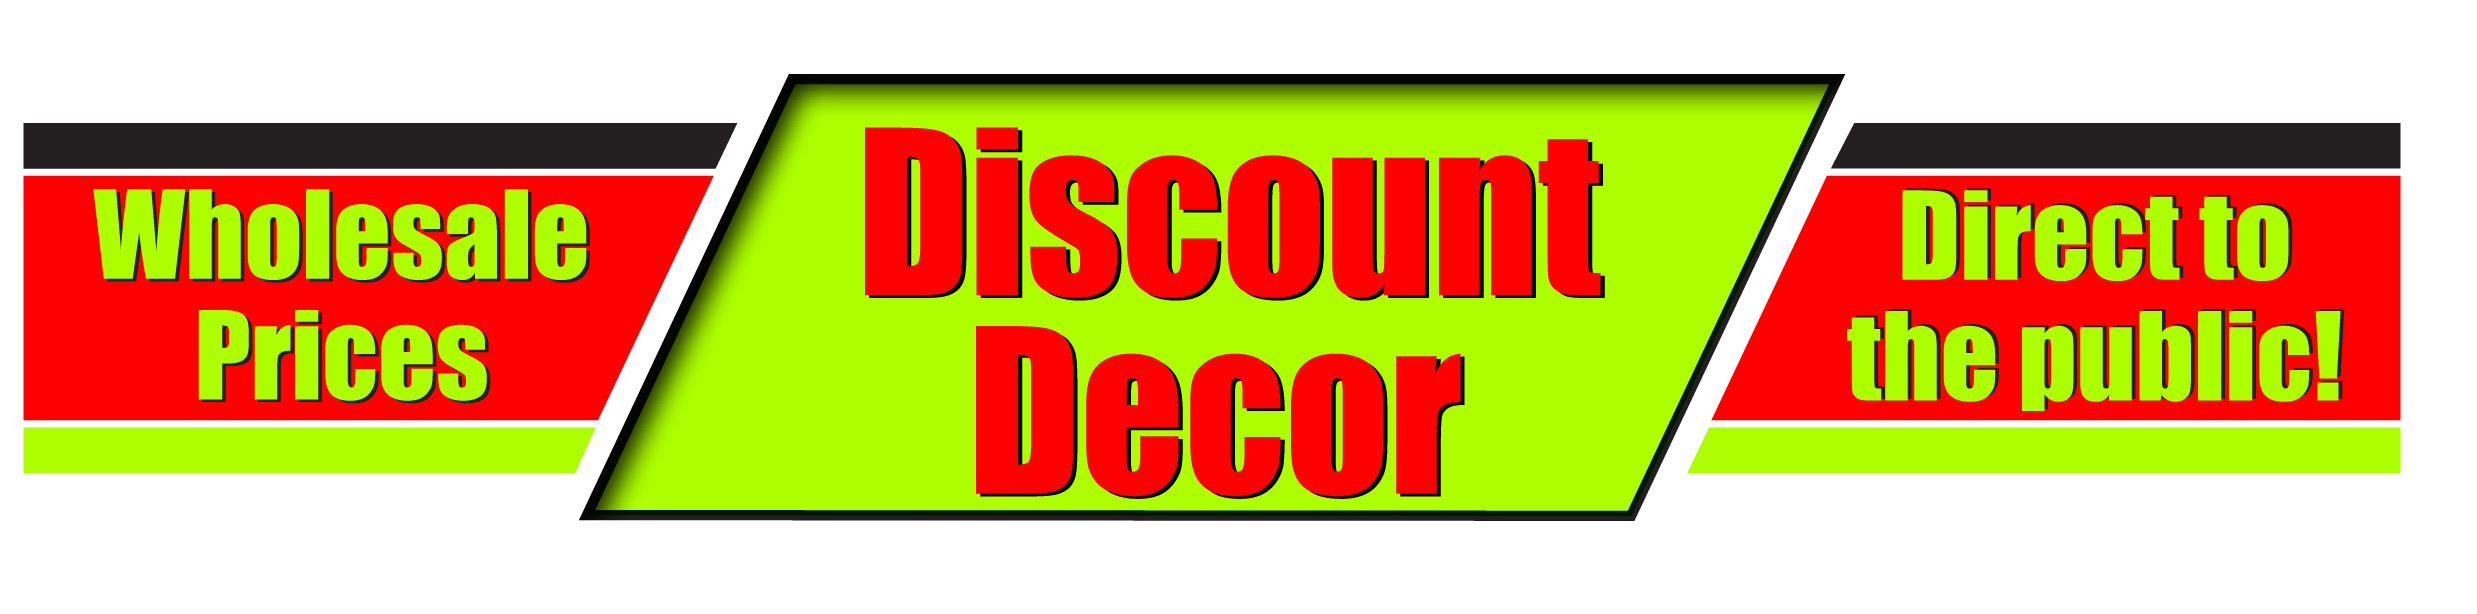 Decor discount 100 images discount decor products - Decor discount villefranche sur saone ...